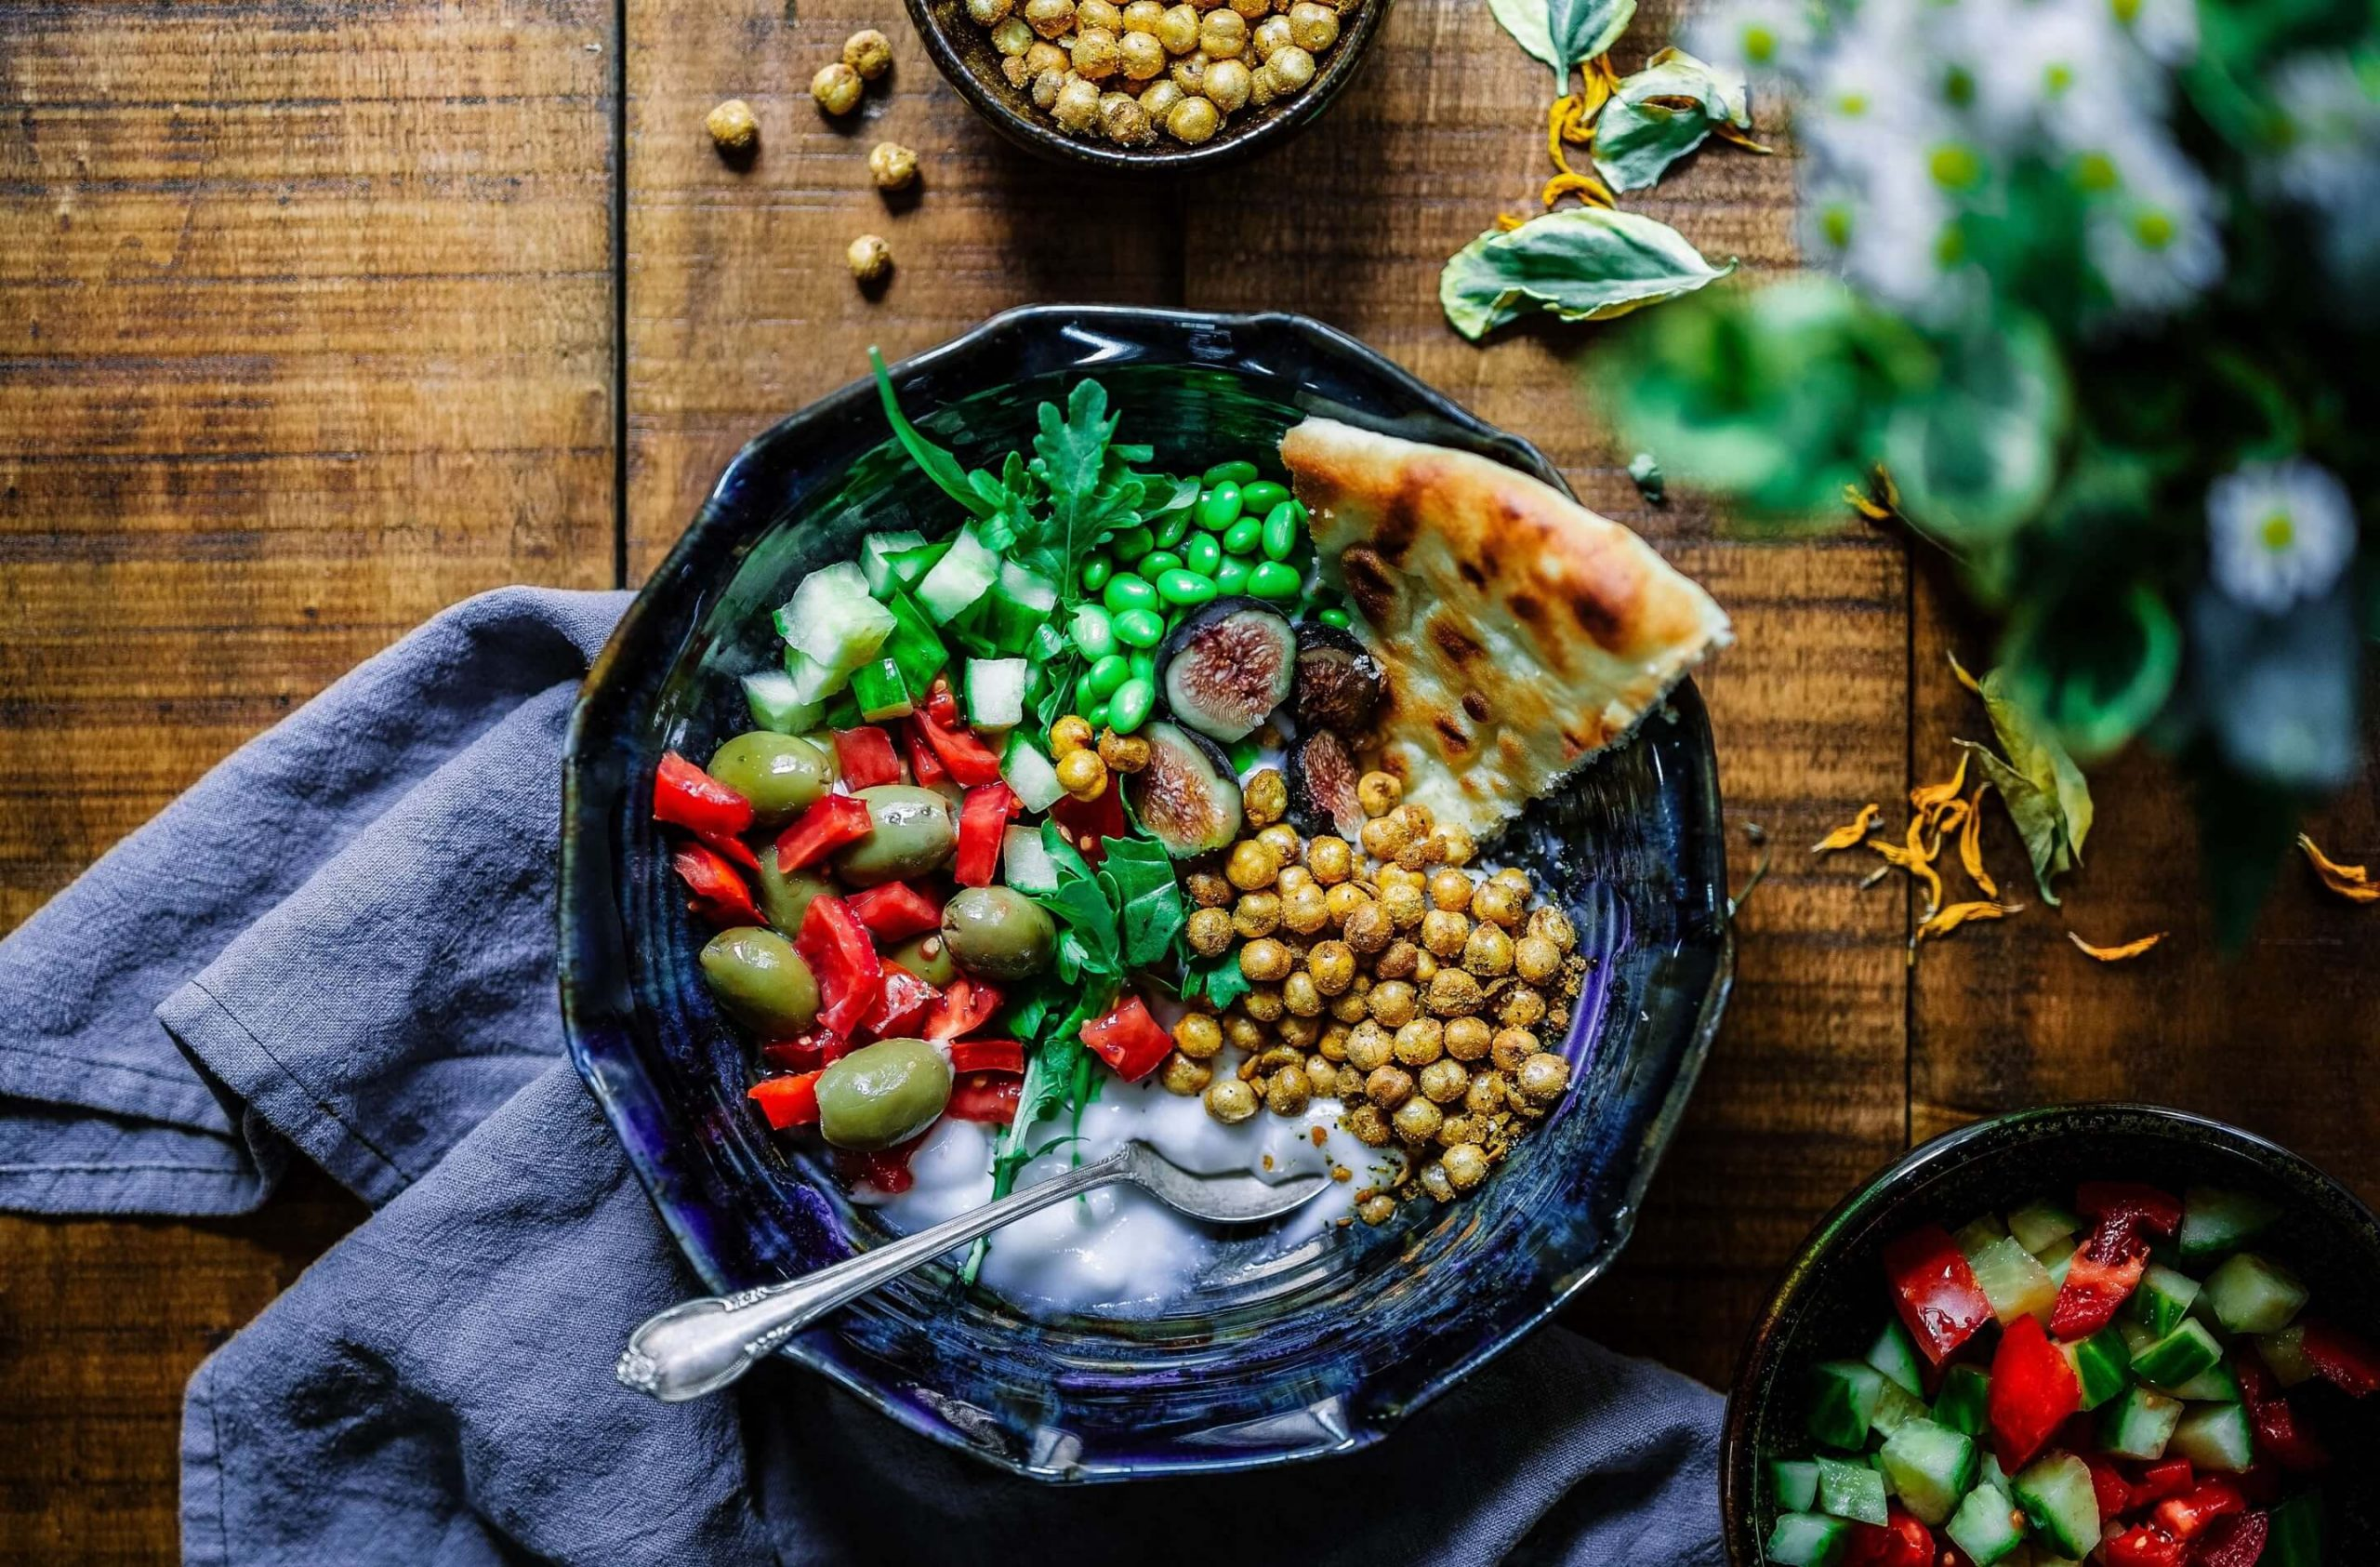 Lunch Favourite with Salad, Naan And Beans